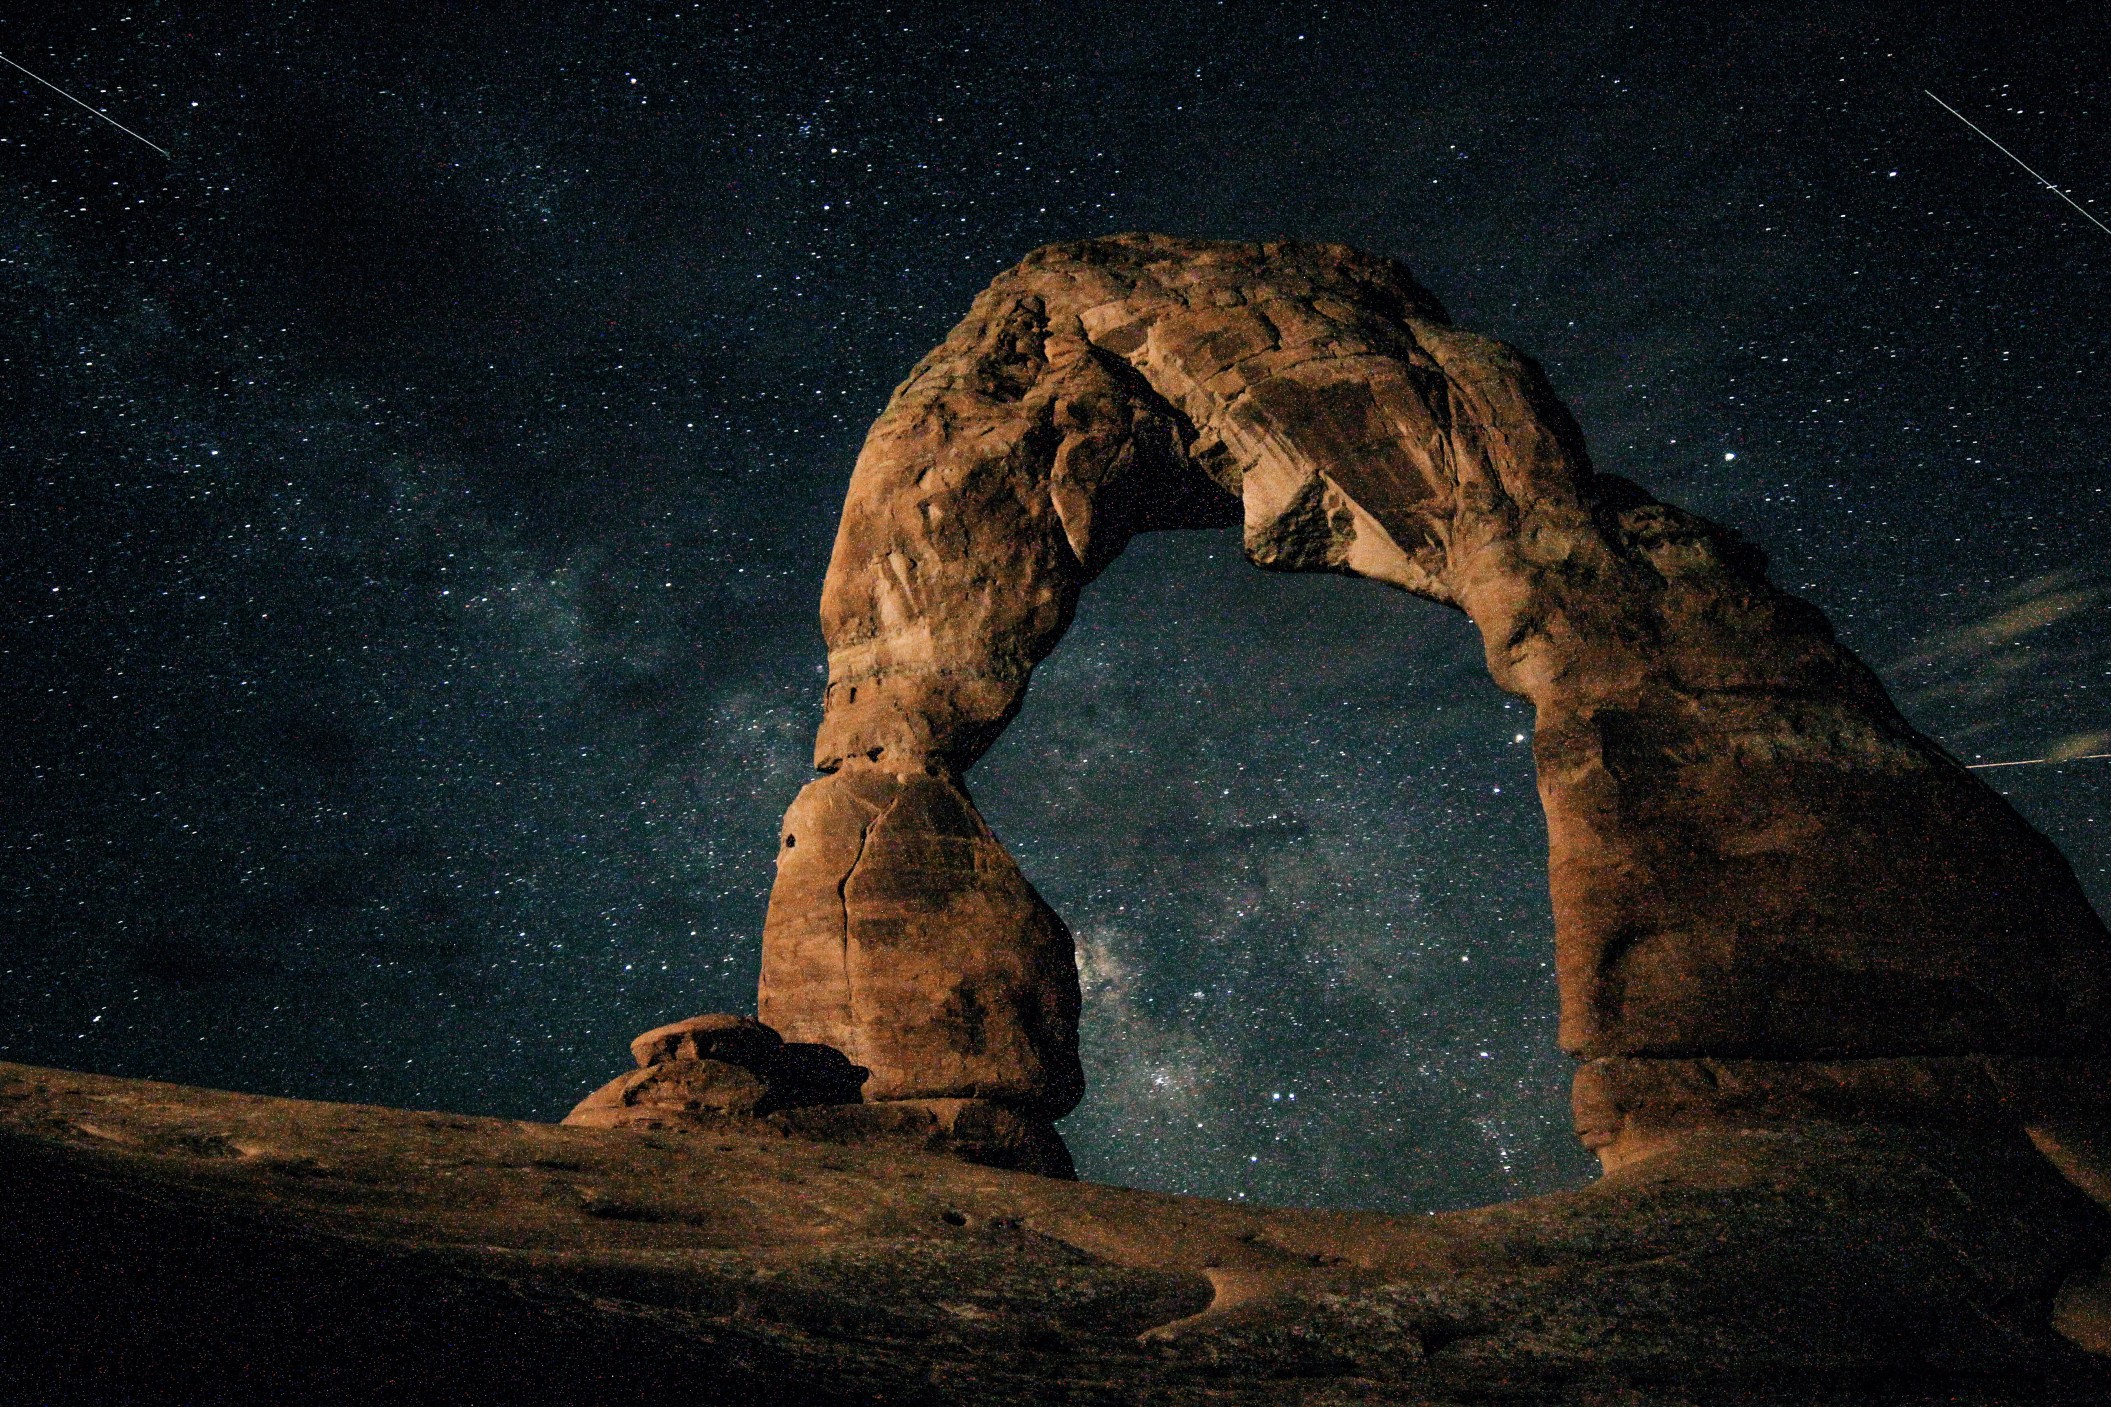 The Delicate Arch Guide for Hikers & Campers